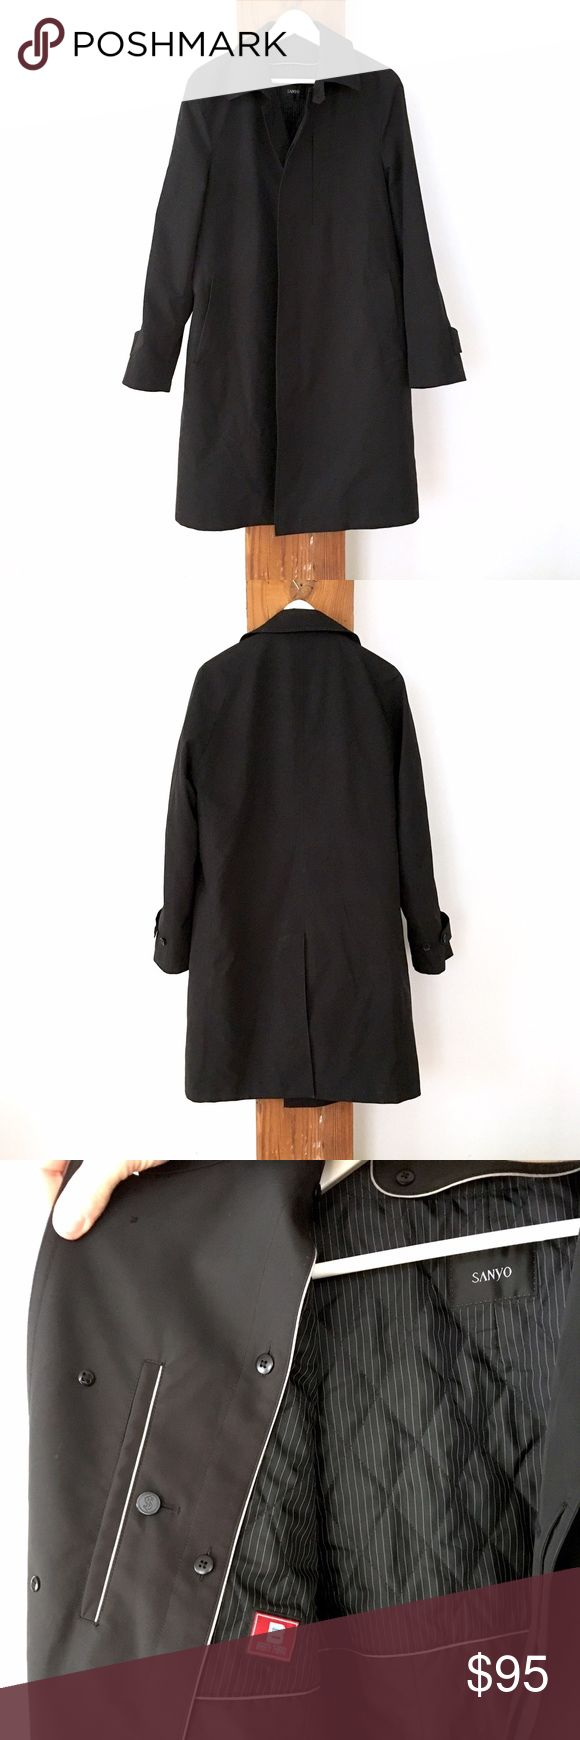 Men's Sanyo black raincoat Men's Sanyo button-up black raincoat with removable inside lining. Lovingly worn, still in great condition! High quality water resistant coat, originally purchased from Macy's. Fits Men's size 40 Regular, though fits a tad more oversized. Nordstrom Jackets & Coats Raincoats